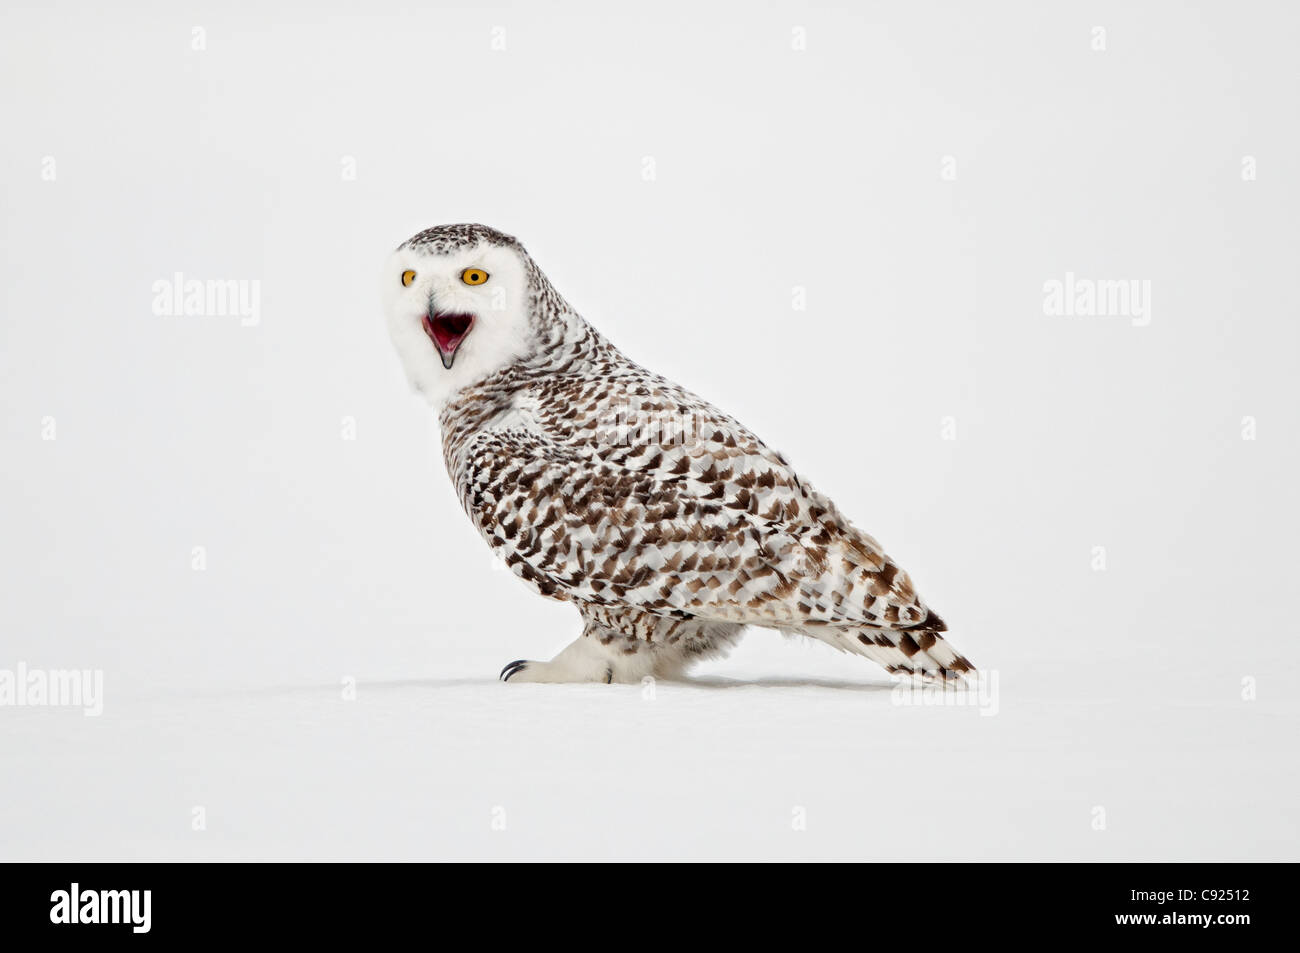 female snowy owl standing on snow saint barthelemy quebec canada